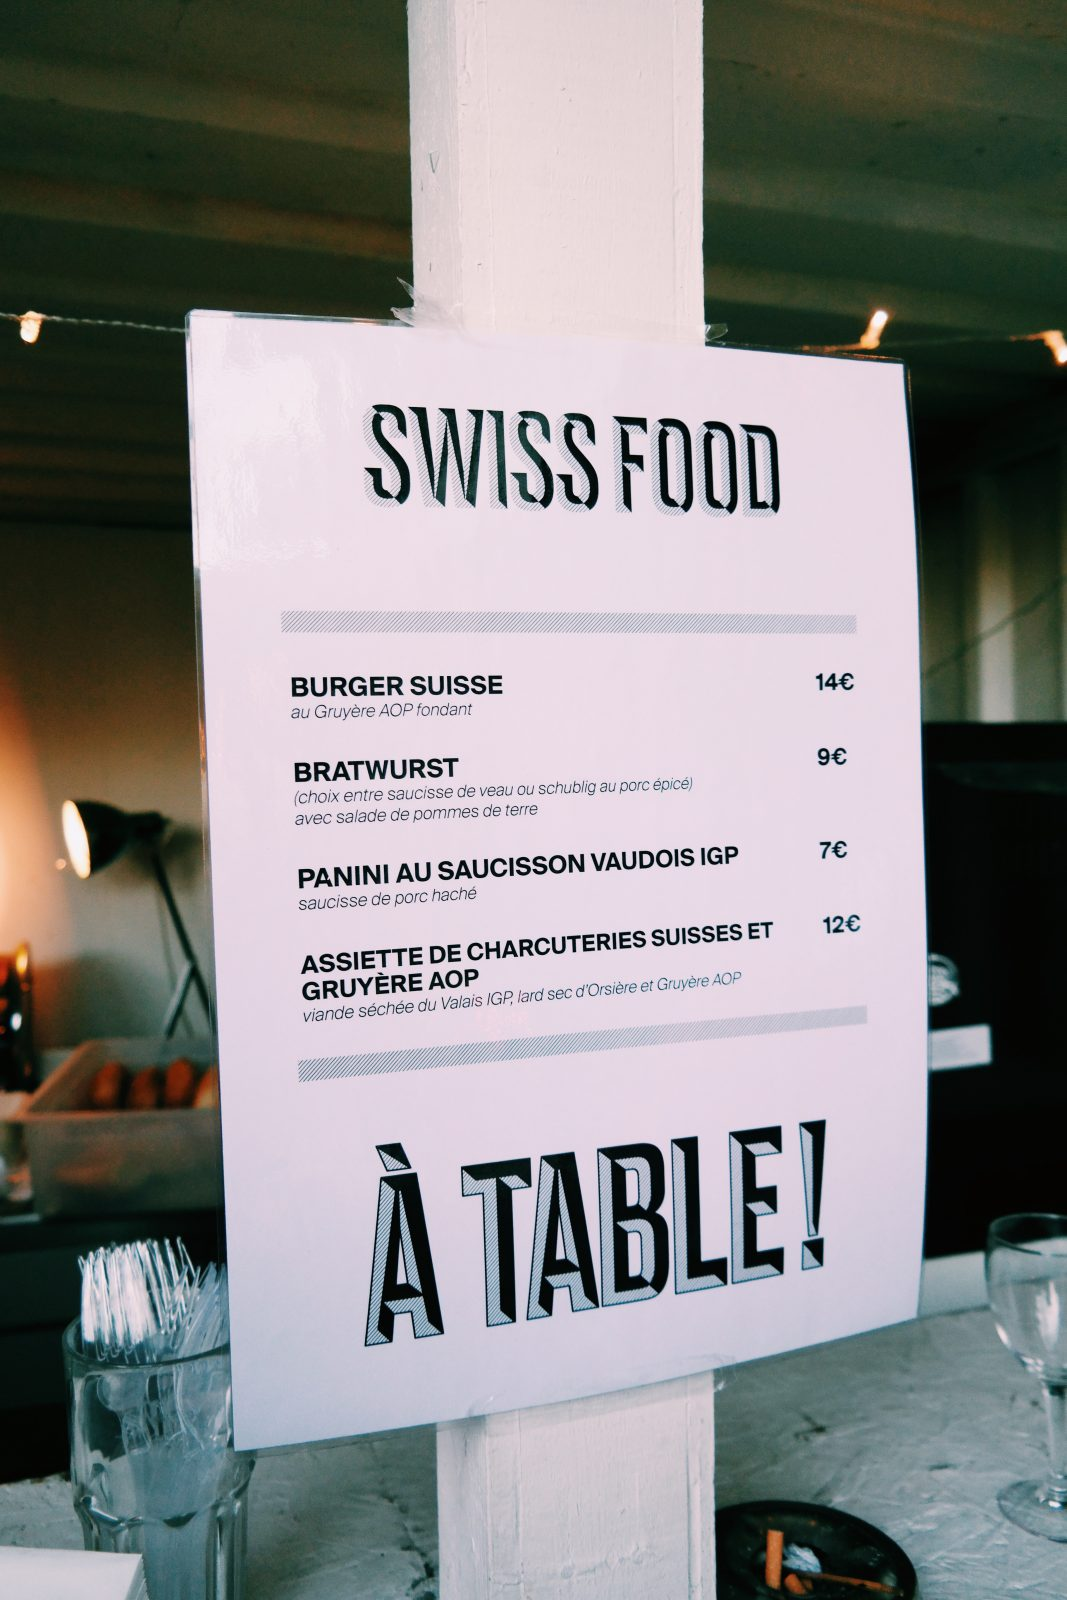 House-of-Switzerland-à-Paris-Wanderswiss-la-suisse-au-wanderlust-menu-street-food-burger-gruyère-charcuterie-événements-sportifs-culturels-festifs-matchs-Euro-2016-photo-usofparis-blog